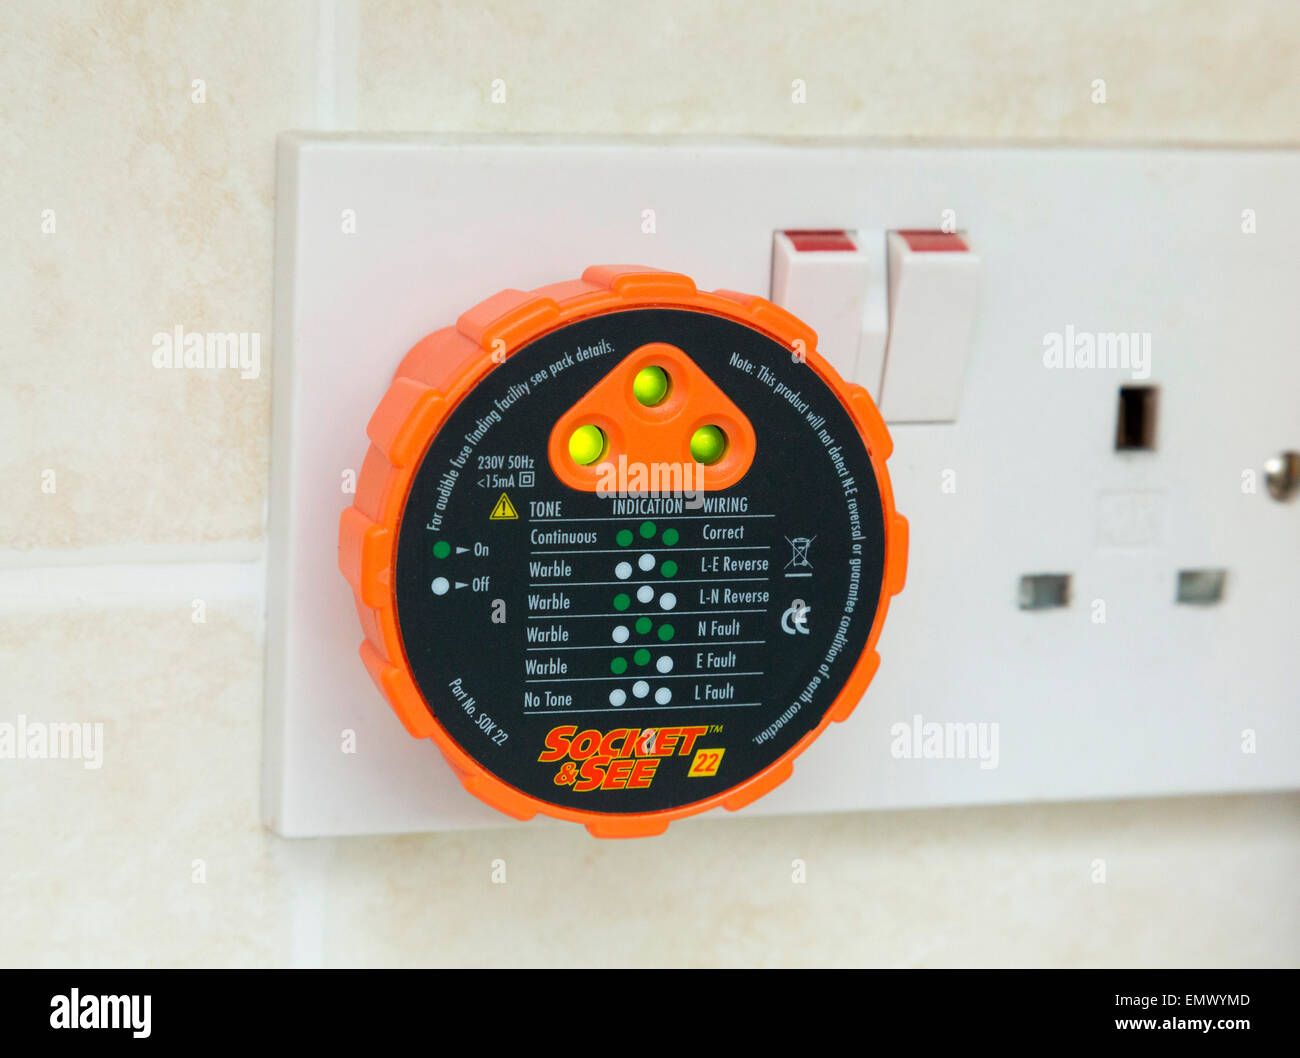 mains electrical safety tester plug - Stock Image